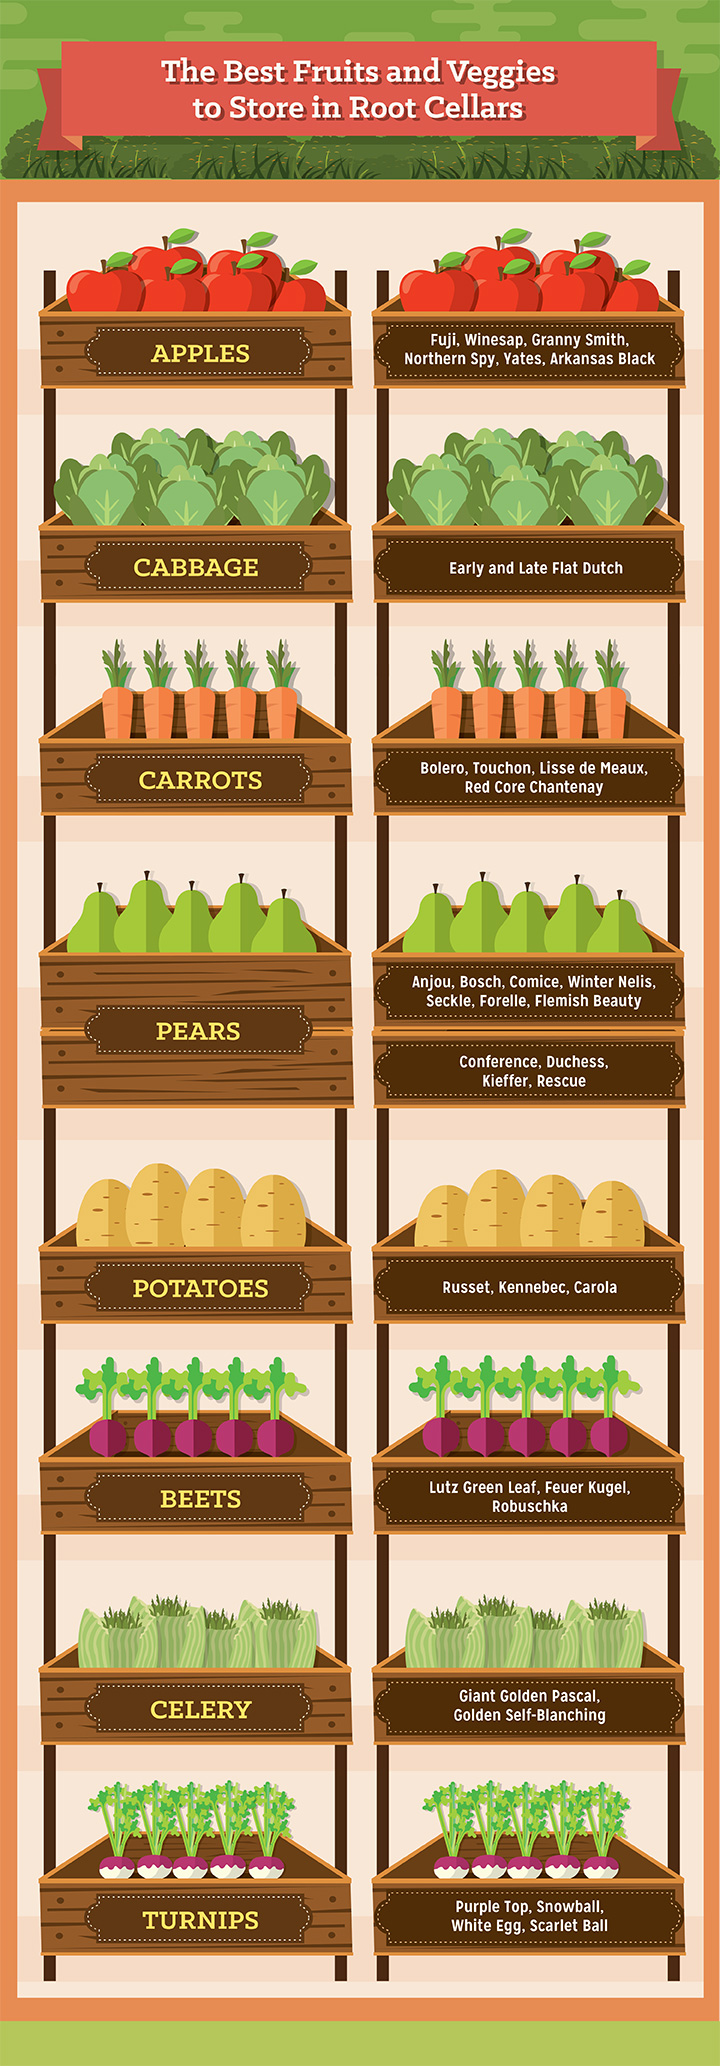 The Best Fruits and Veggies to Store in Root Cellars